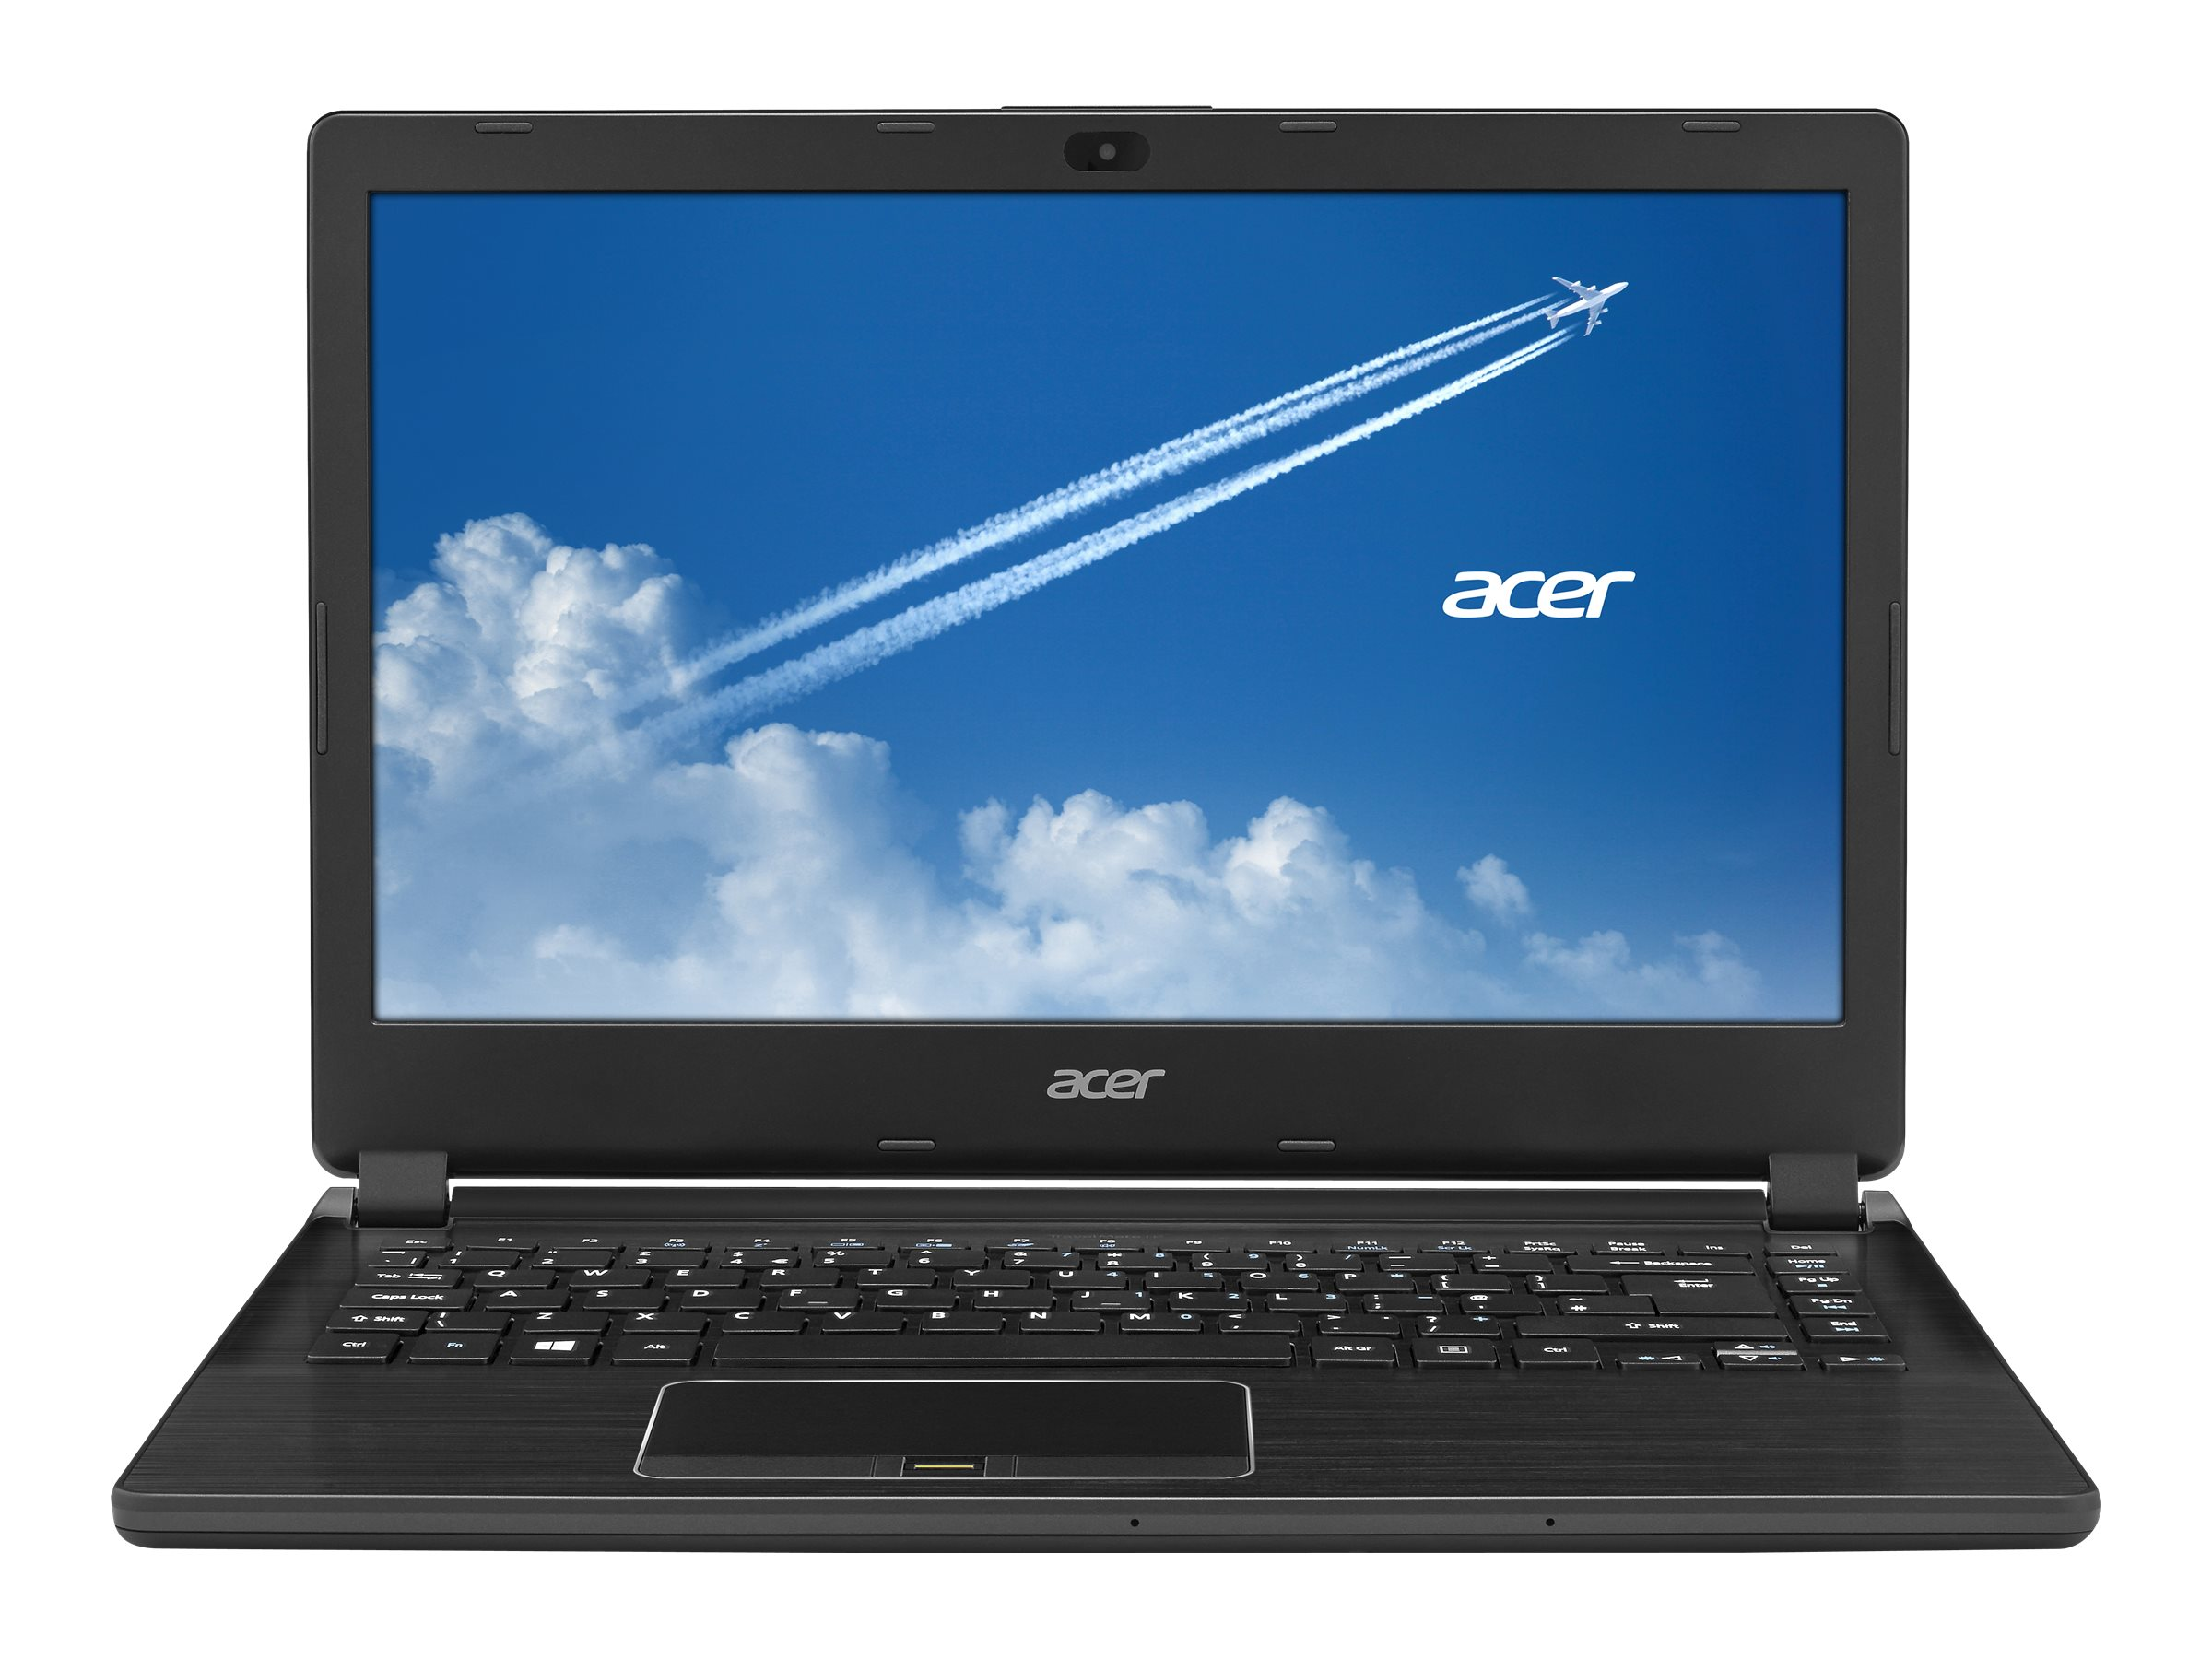 Acer TravelMate P446-M-59BB 2.2GHz Core i5 14in display, NX.VCEAA.001